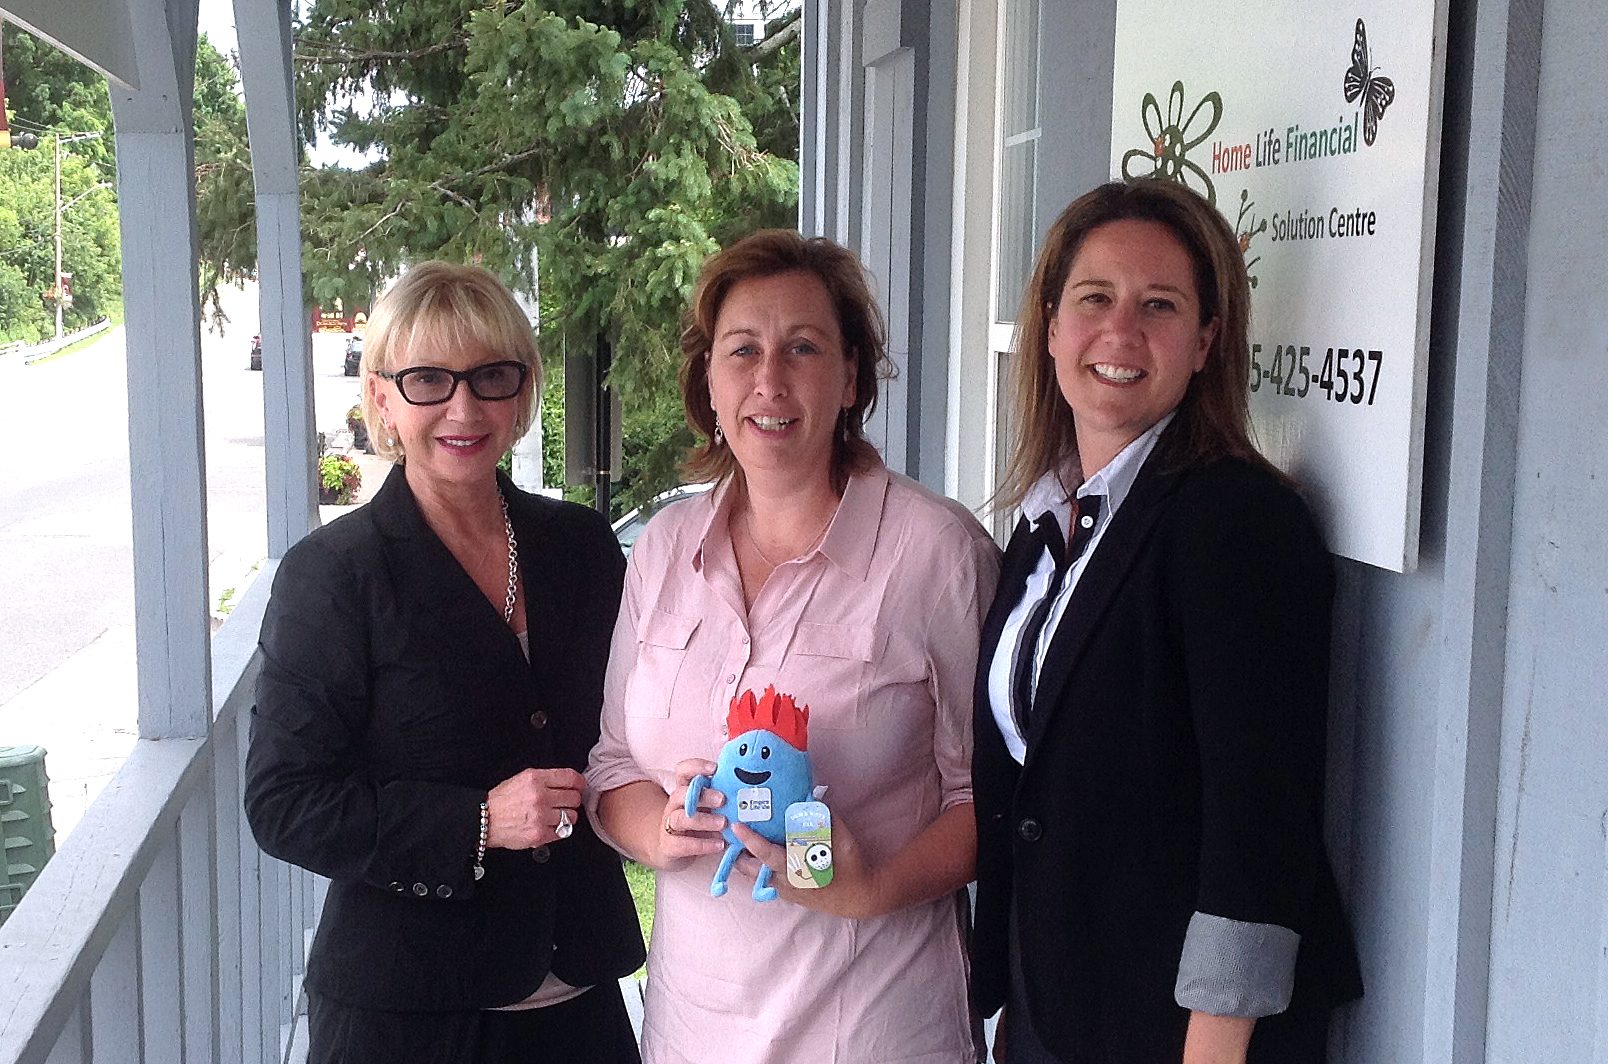 Pictured: Ilana Garber – Empire Life, Lori Murphy (centre) holding Dumb Ways to Die Numpty toy, and Laura Madsen - Empire Life